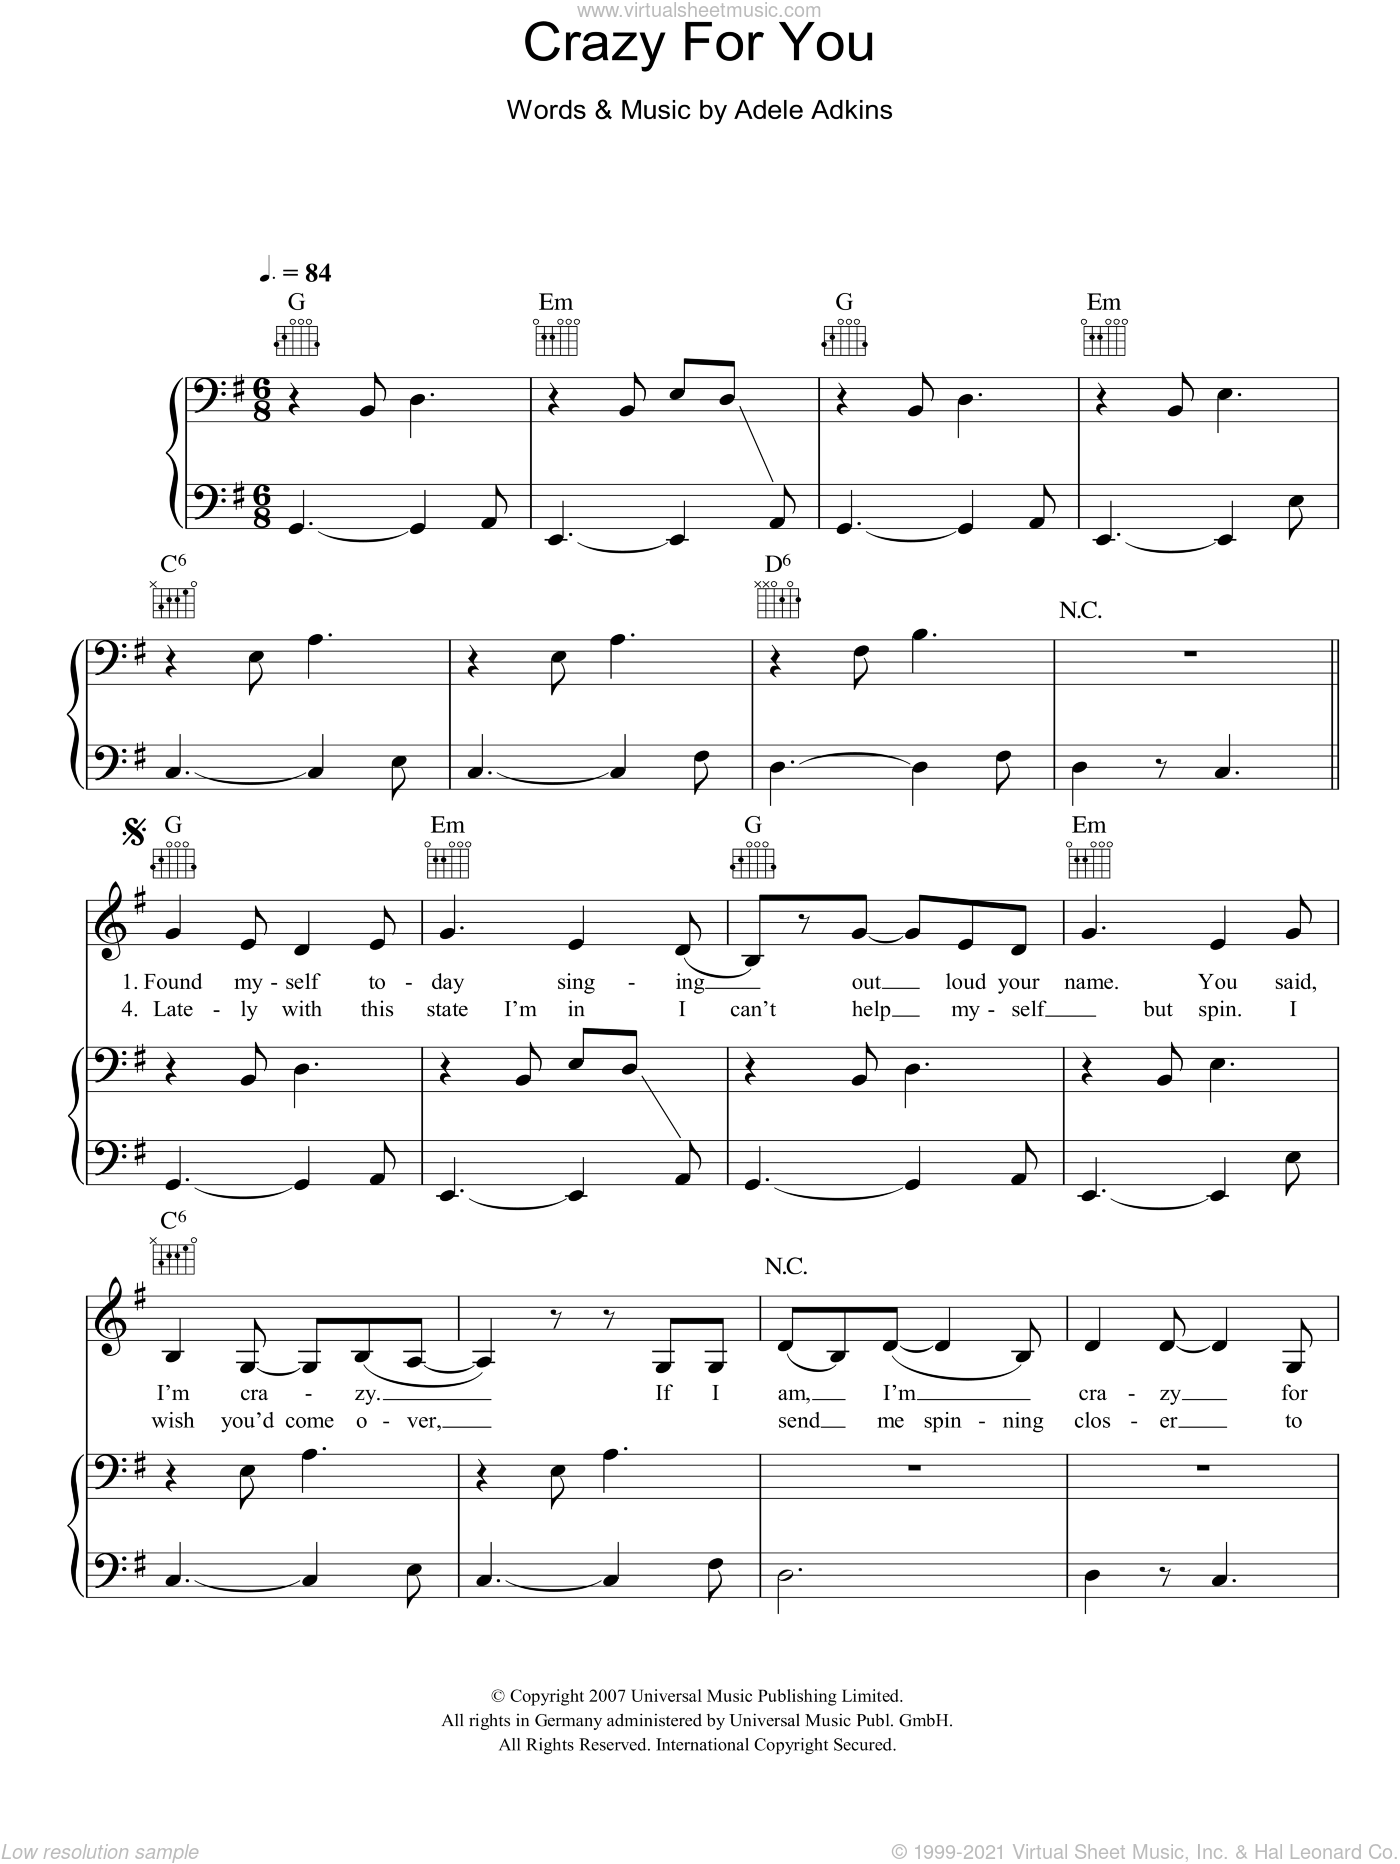 Crazy For You sheet music for voice, piano or guitar by Adele Adkins and Adele